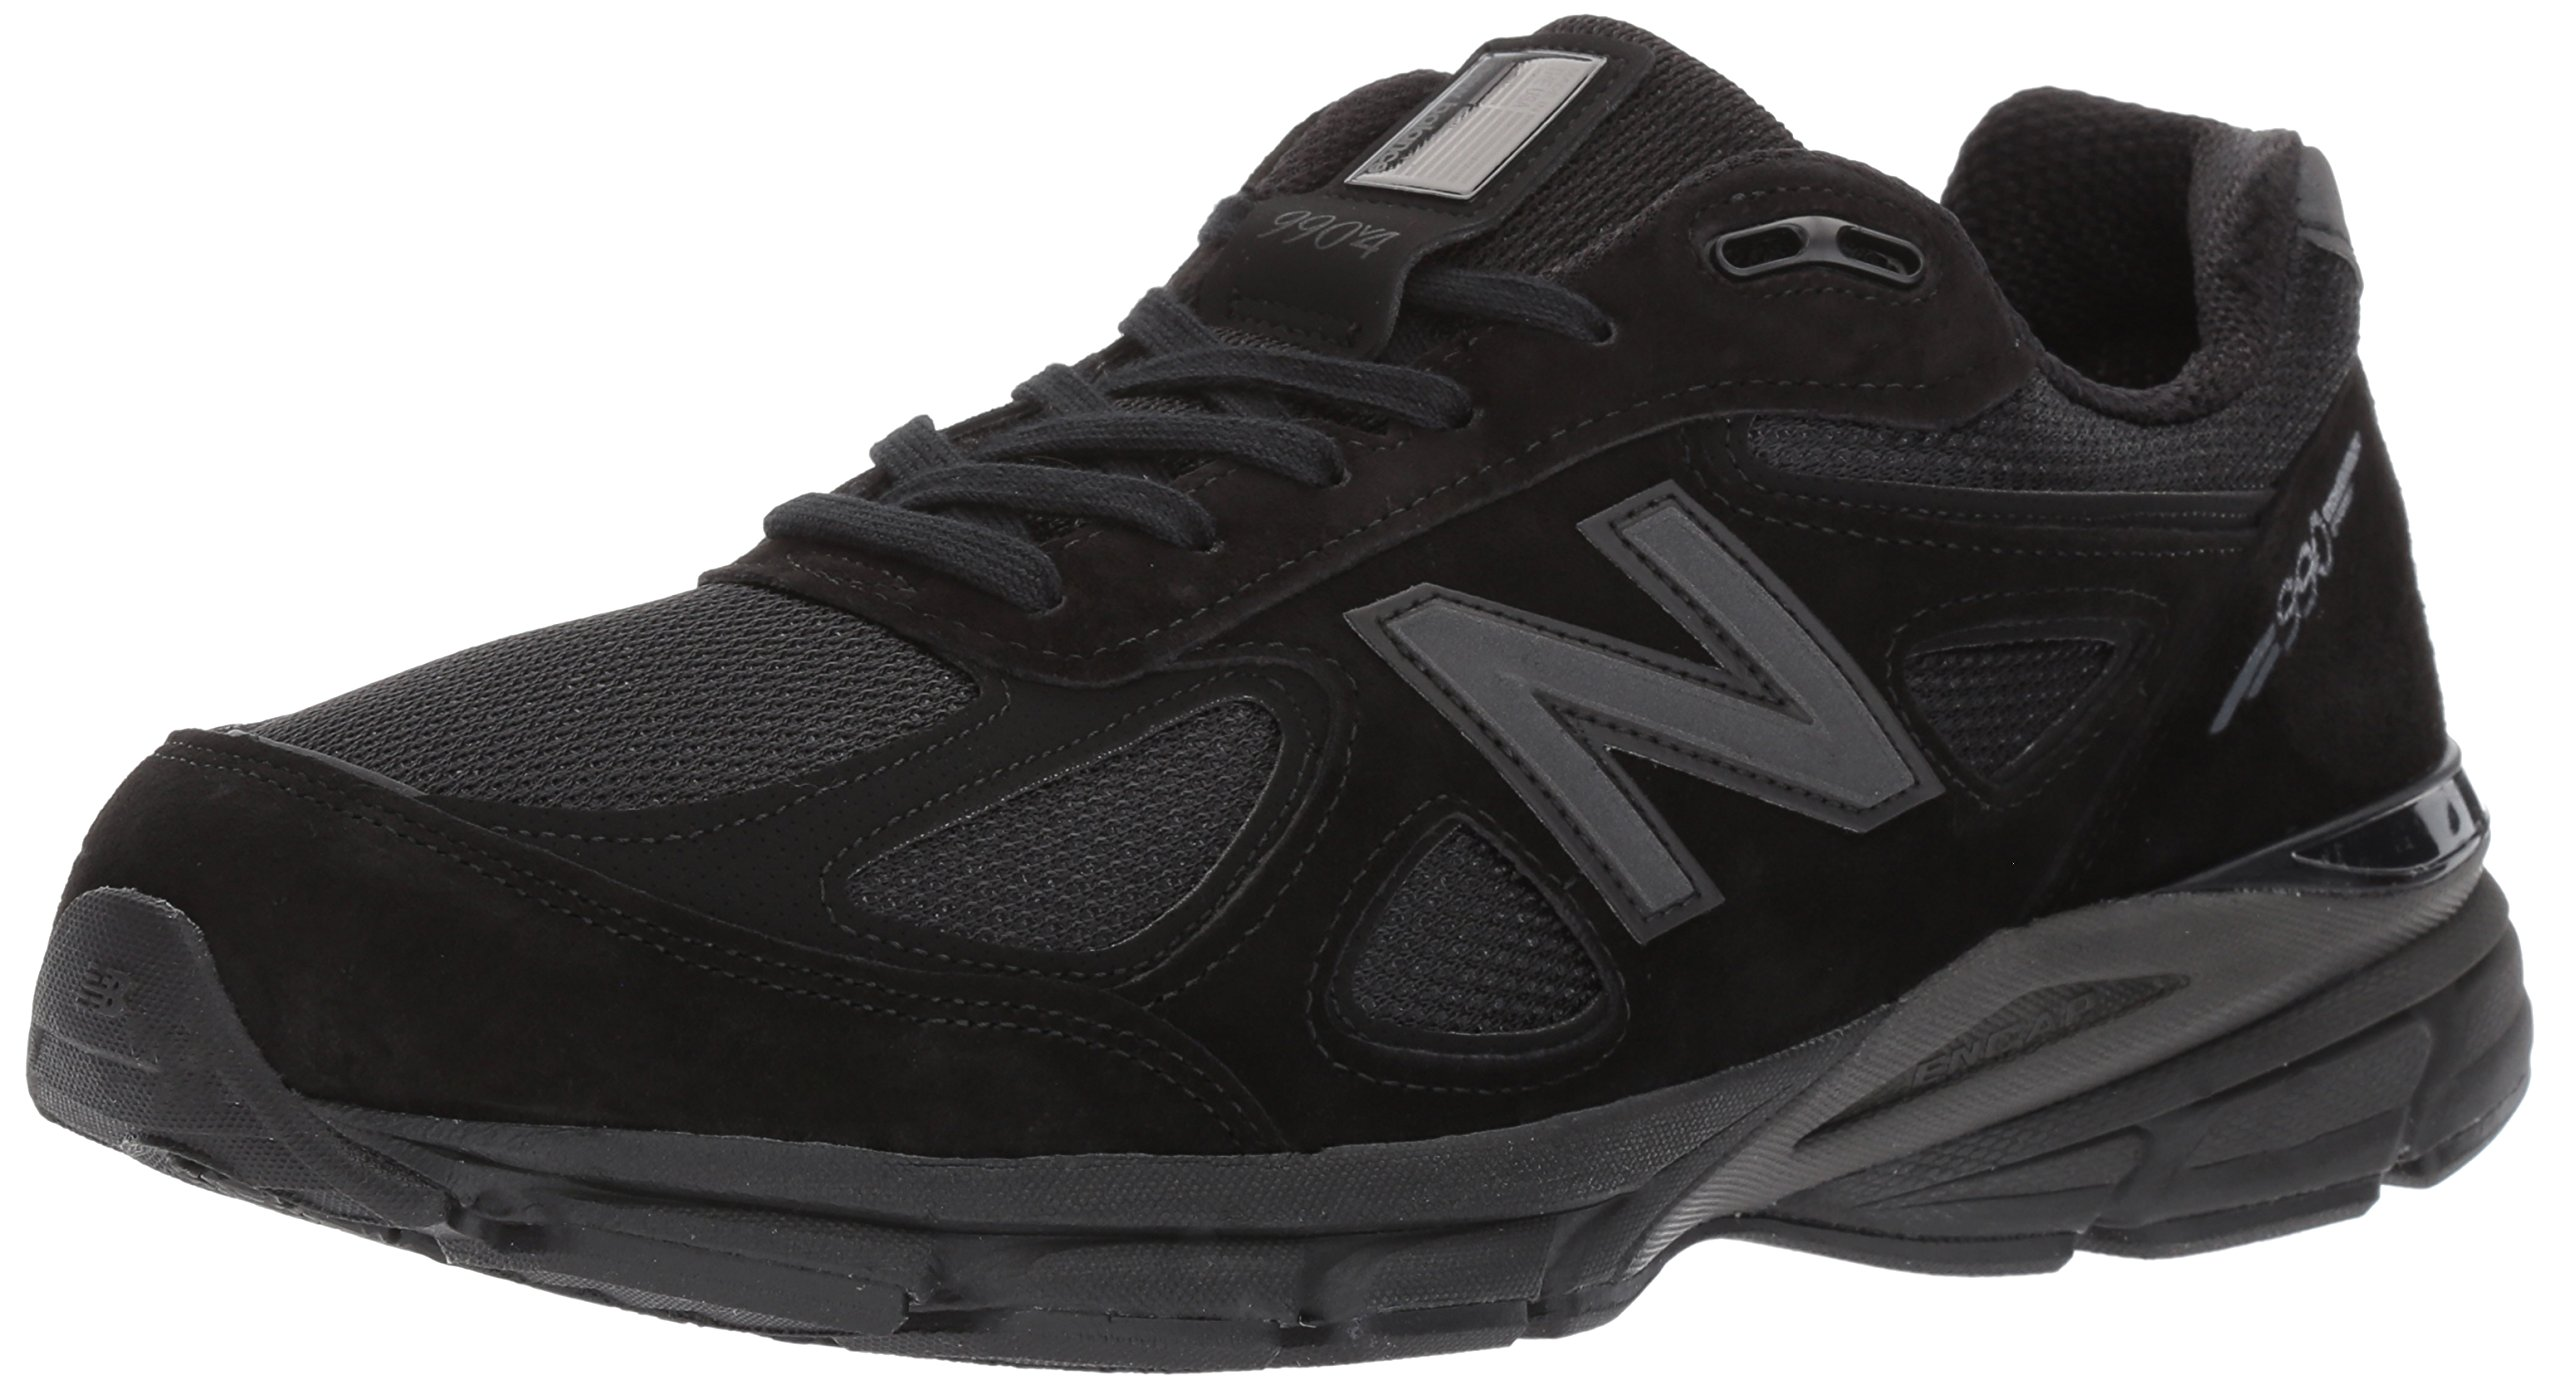 New Balance Men's 990V4 Running Shoe, Black/Black, 11 2E US